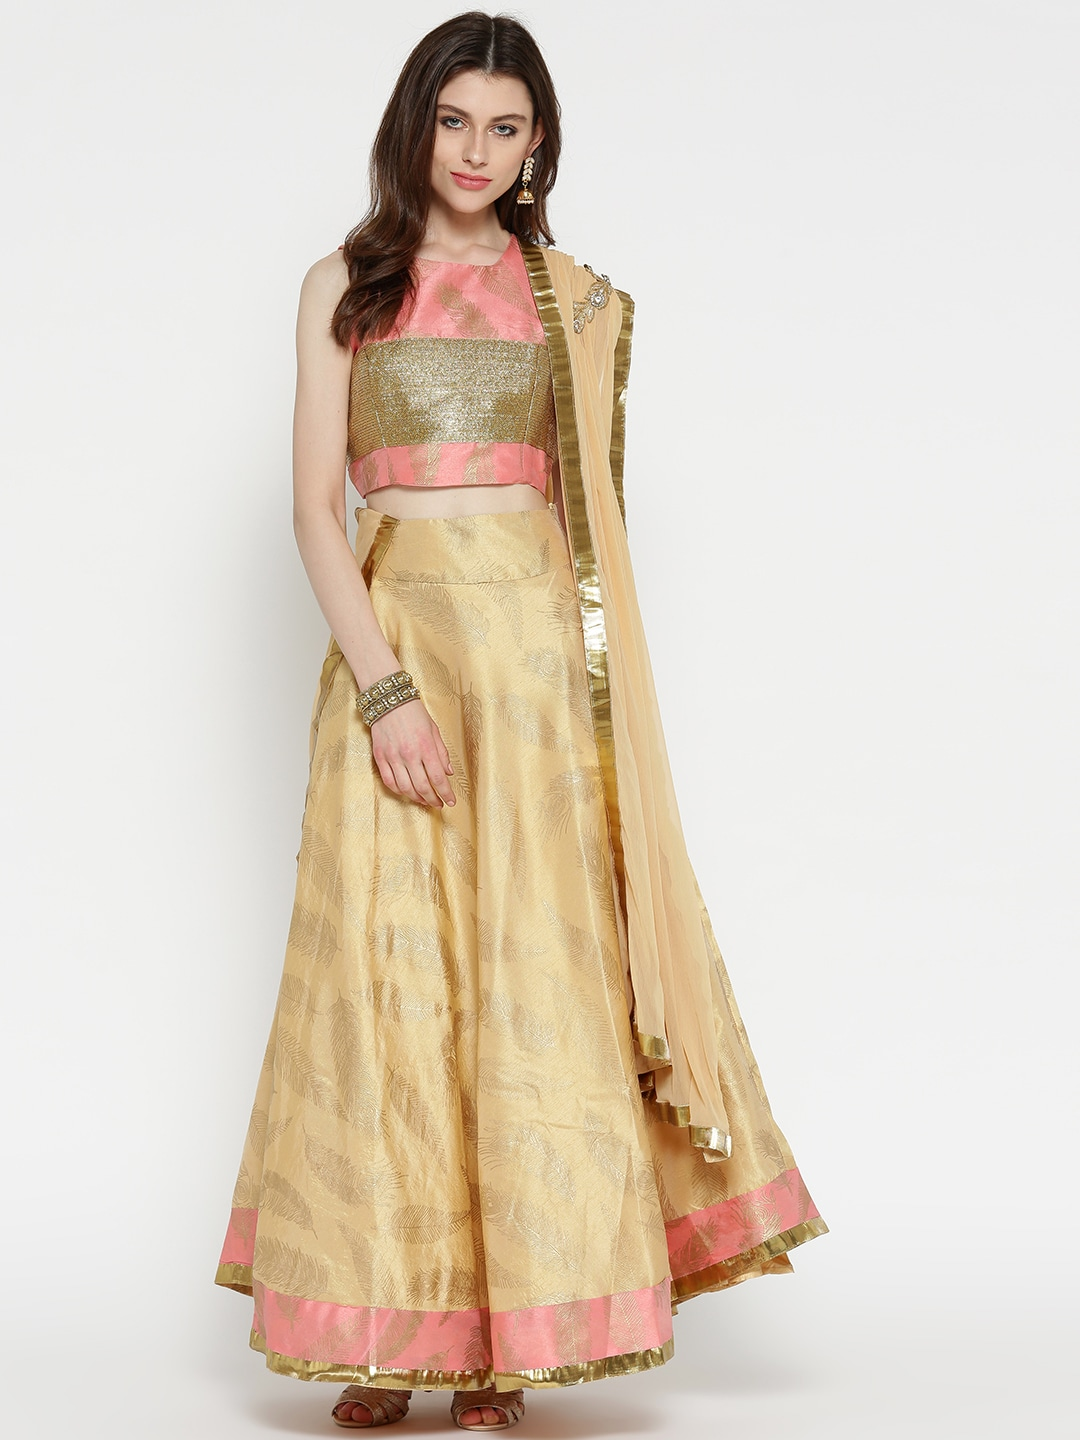 Ira Soleil Beige & Peach-Coloured Printed Ready to Wear Lehenga & Blouse with Dupatta image